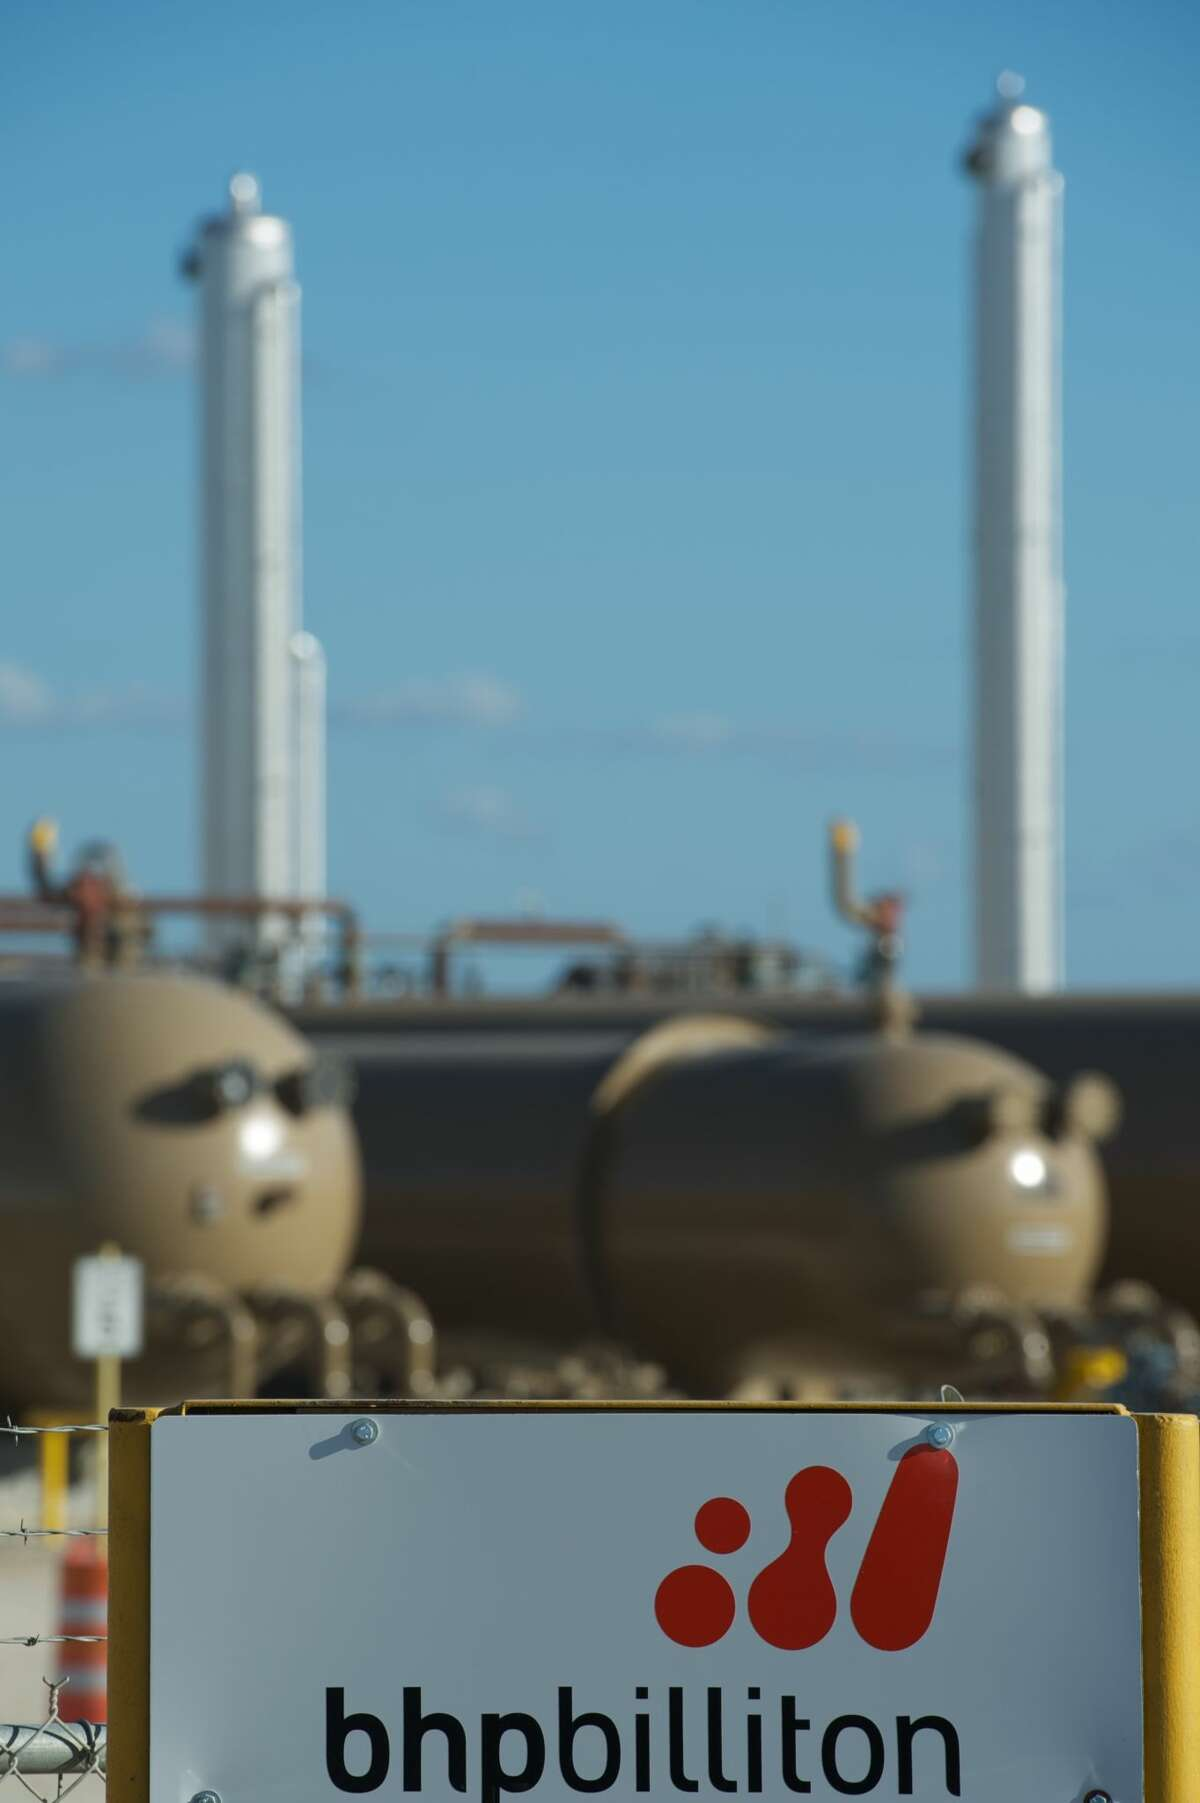 BP's $10.5 billion acquisition of BHP Billiton's shale assets, including its Black Hawk Central Production Facility in the Eagle Ford dominated the upstream M&A market in 2018, followed by Midland companies Concho Resources, acquiring RSP Permian, and Diamondback Energy acquiring Energen Resources. A new report expects the market to get off to a slow start in 2019 until more clarity is seen in oil prices.